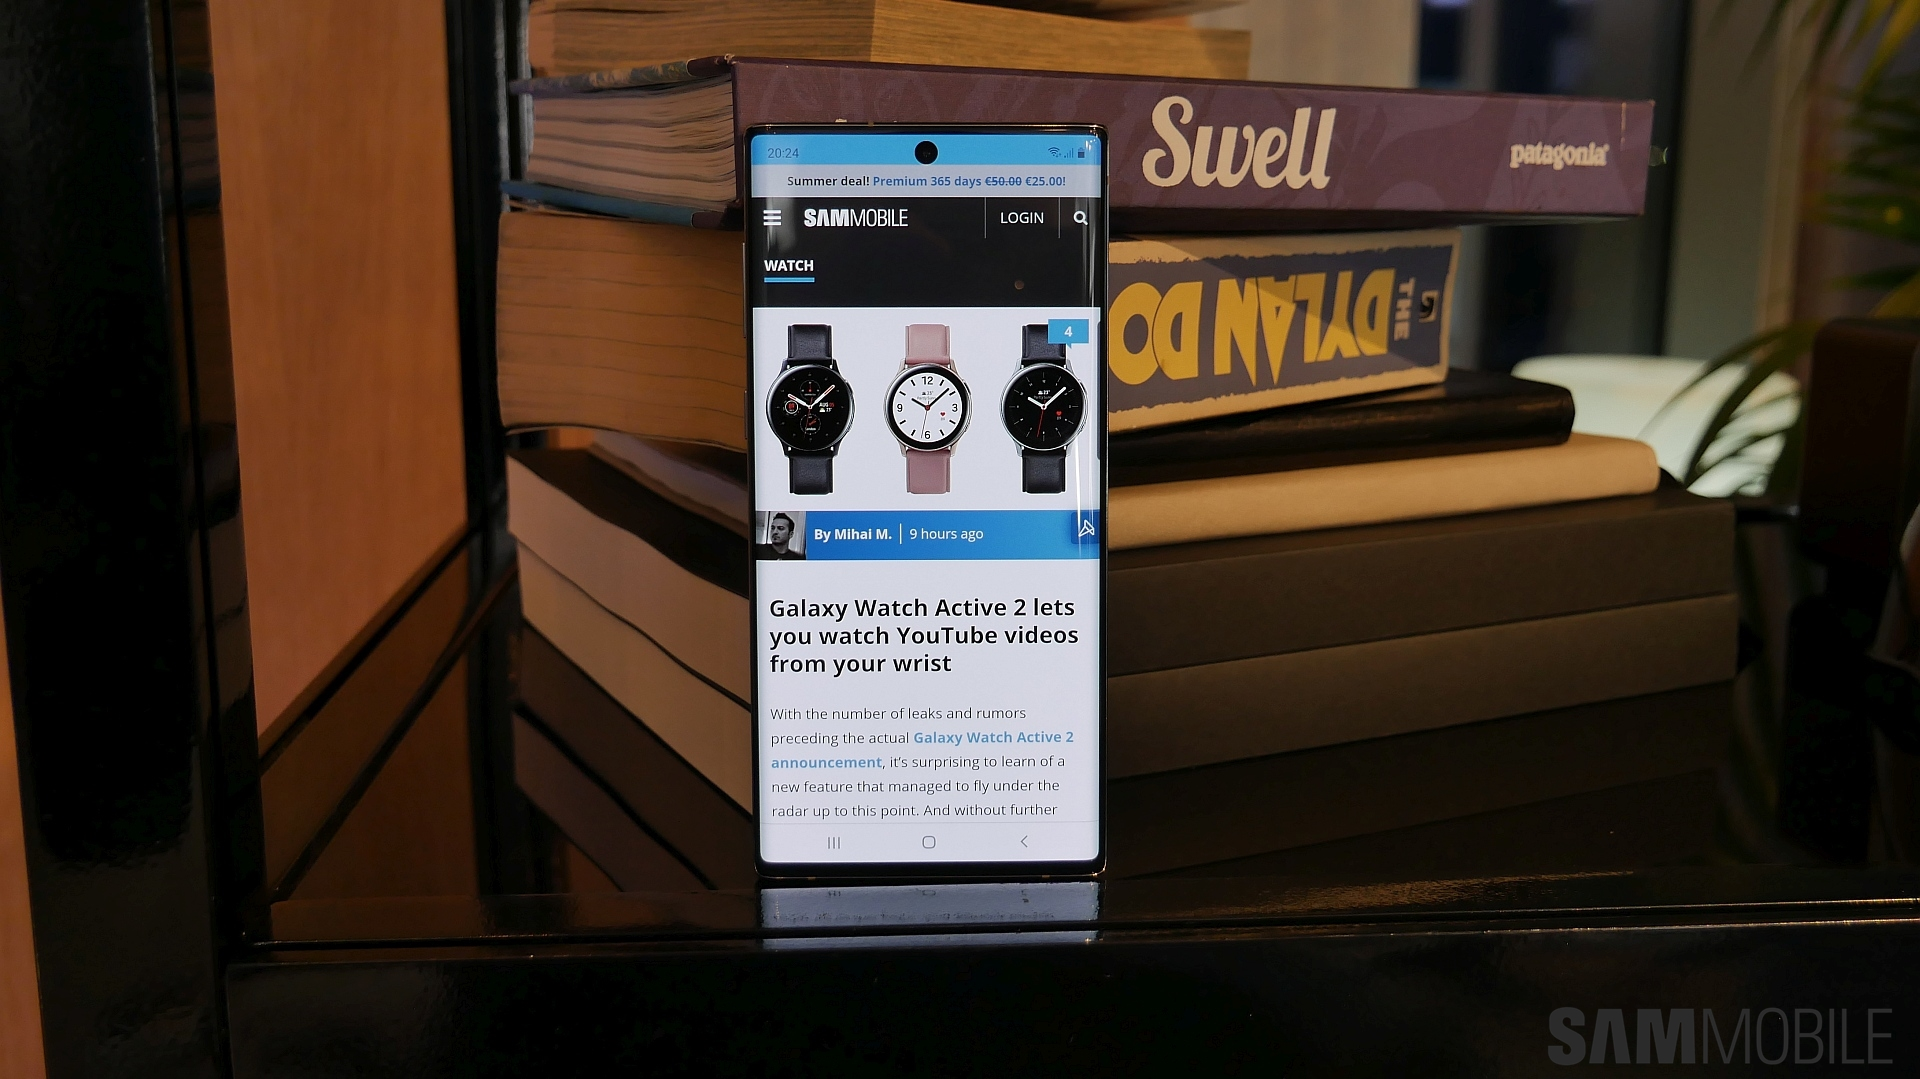 Galaxy S10+ vs Galaxy Note 10+: Which should you buy? - SamMobile